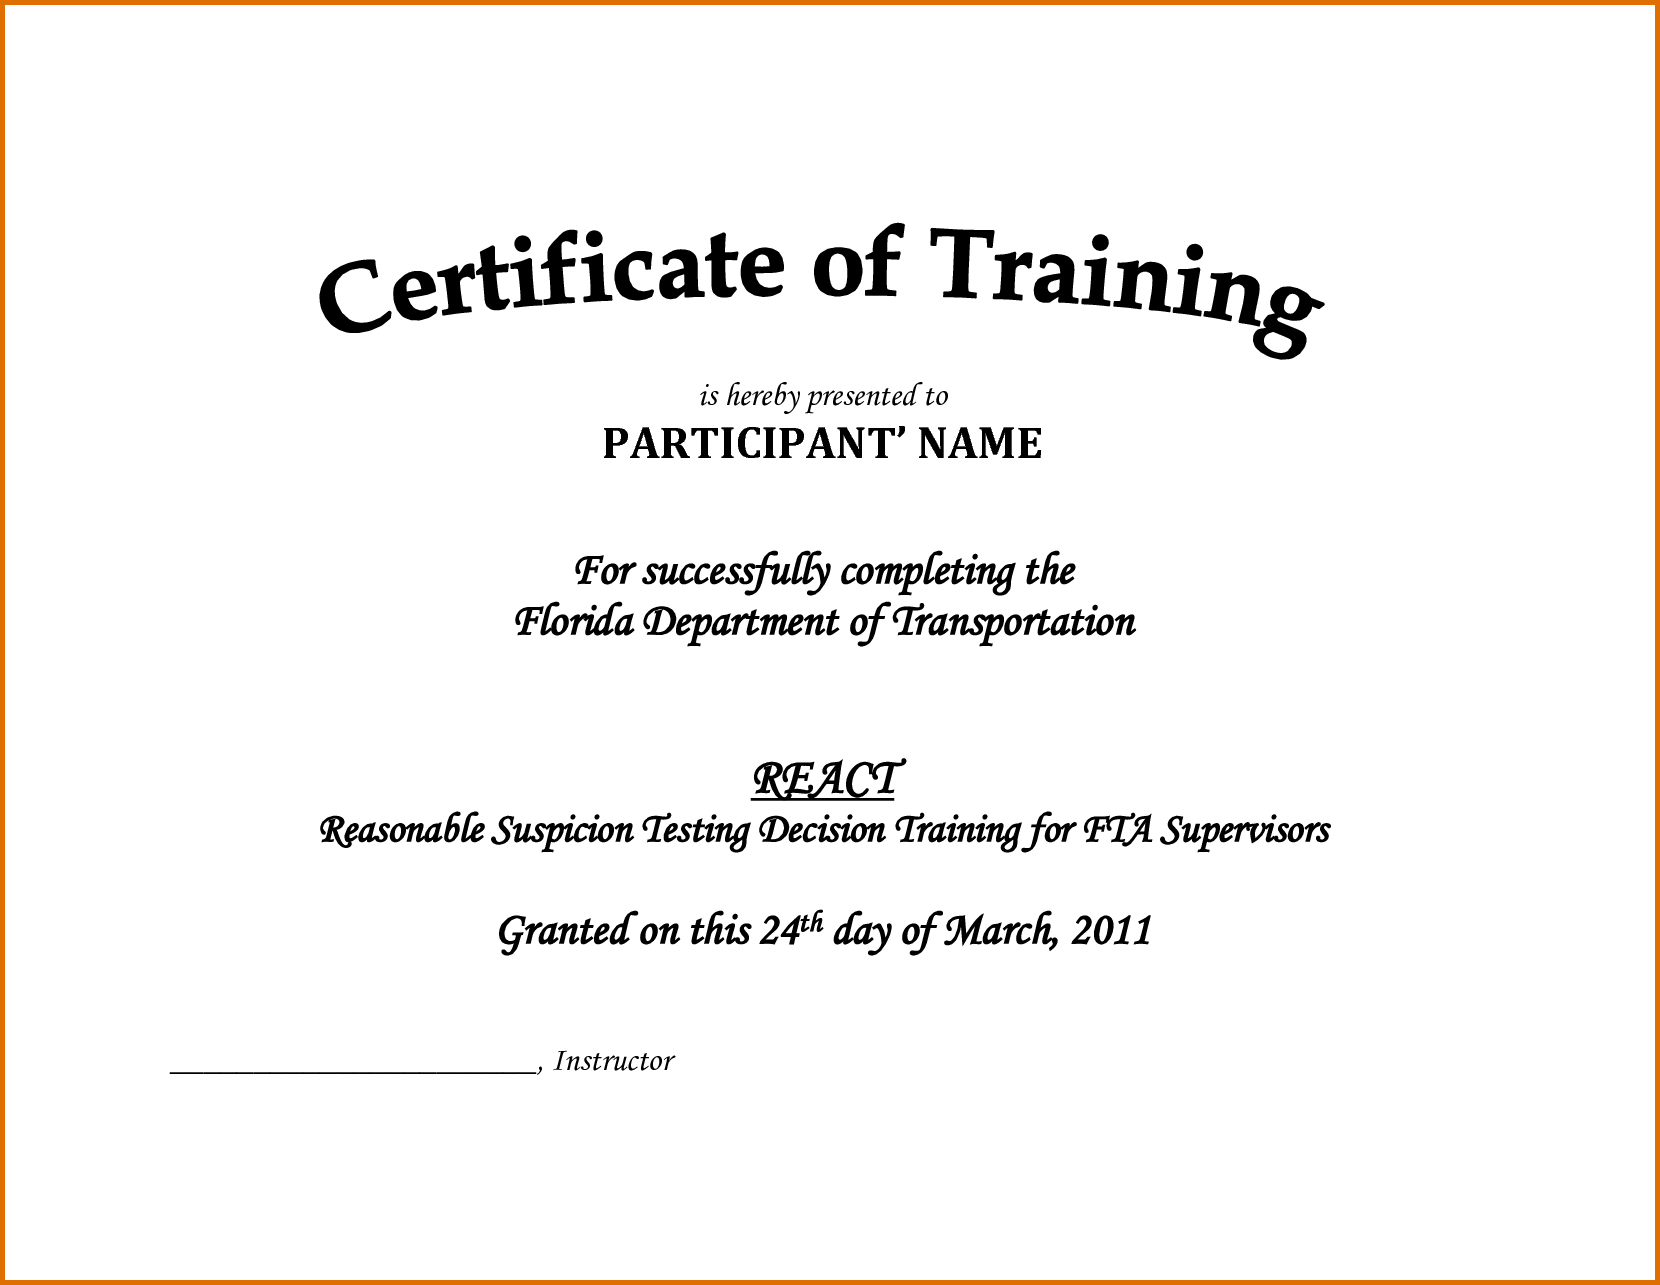 Armycertificateofachievementtemplatemoneylendingagreement Intended For Army Certificate Of Completion Template